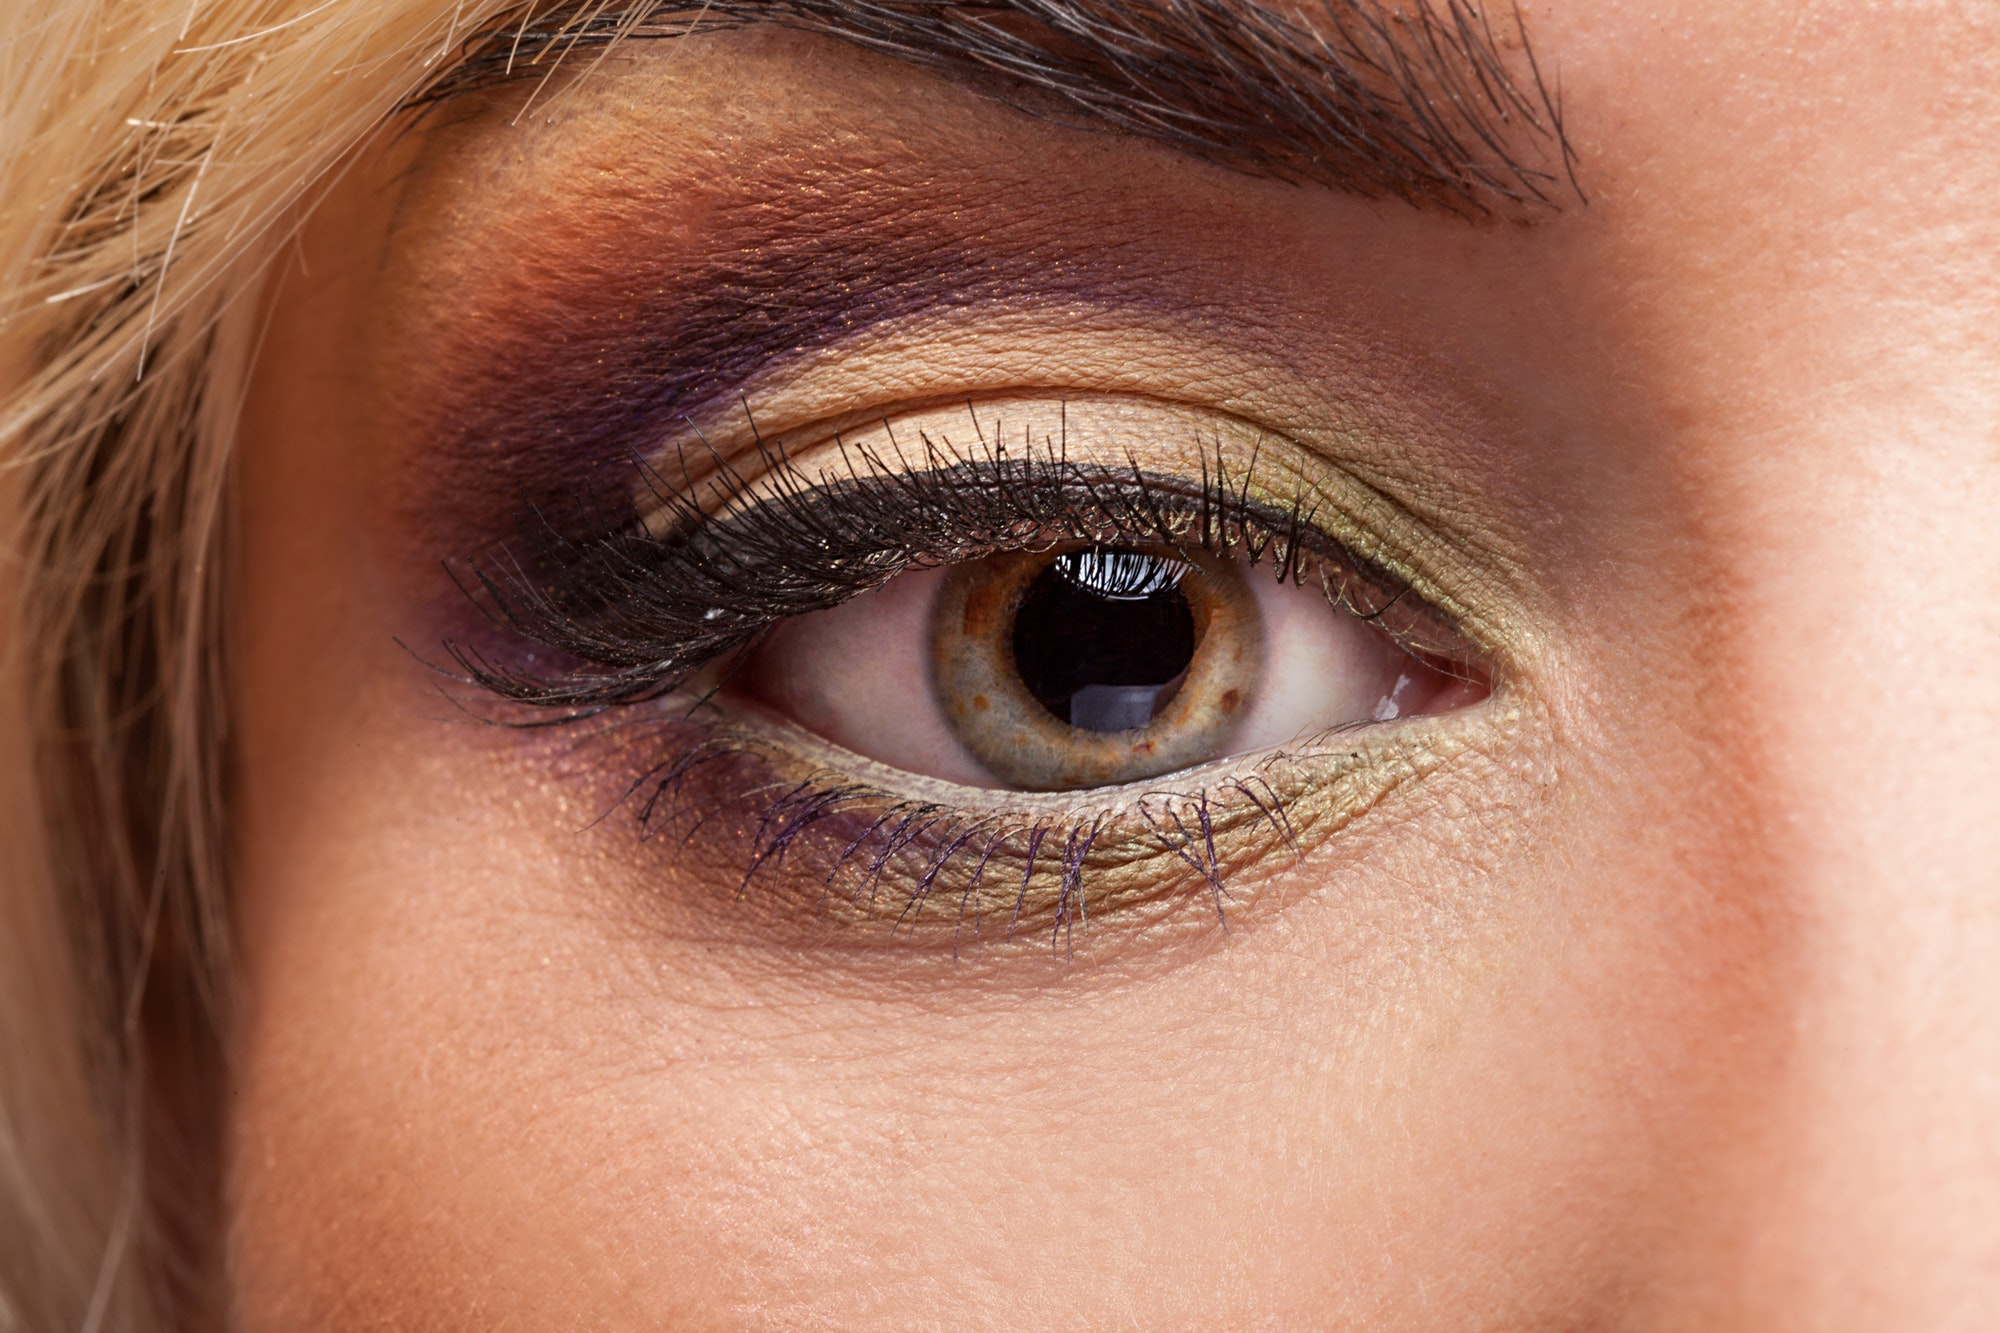 Eye with professional makeup in close up image